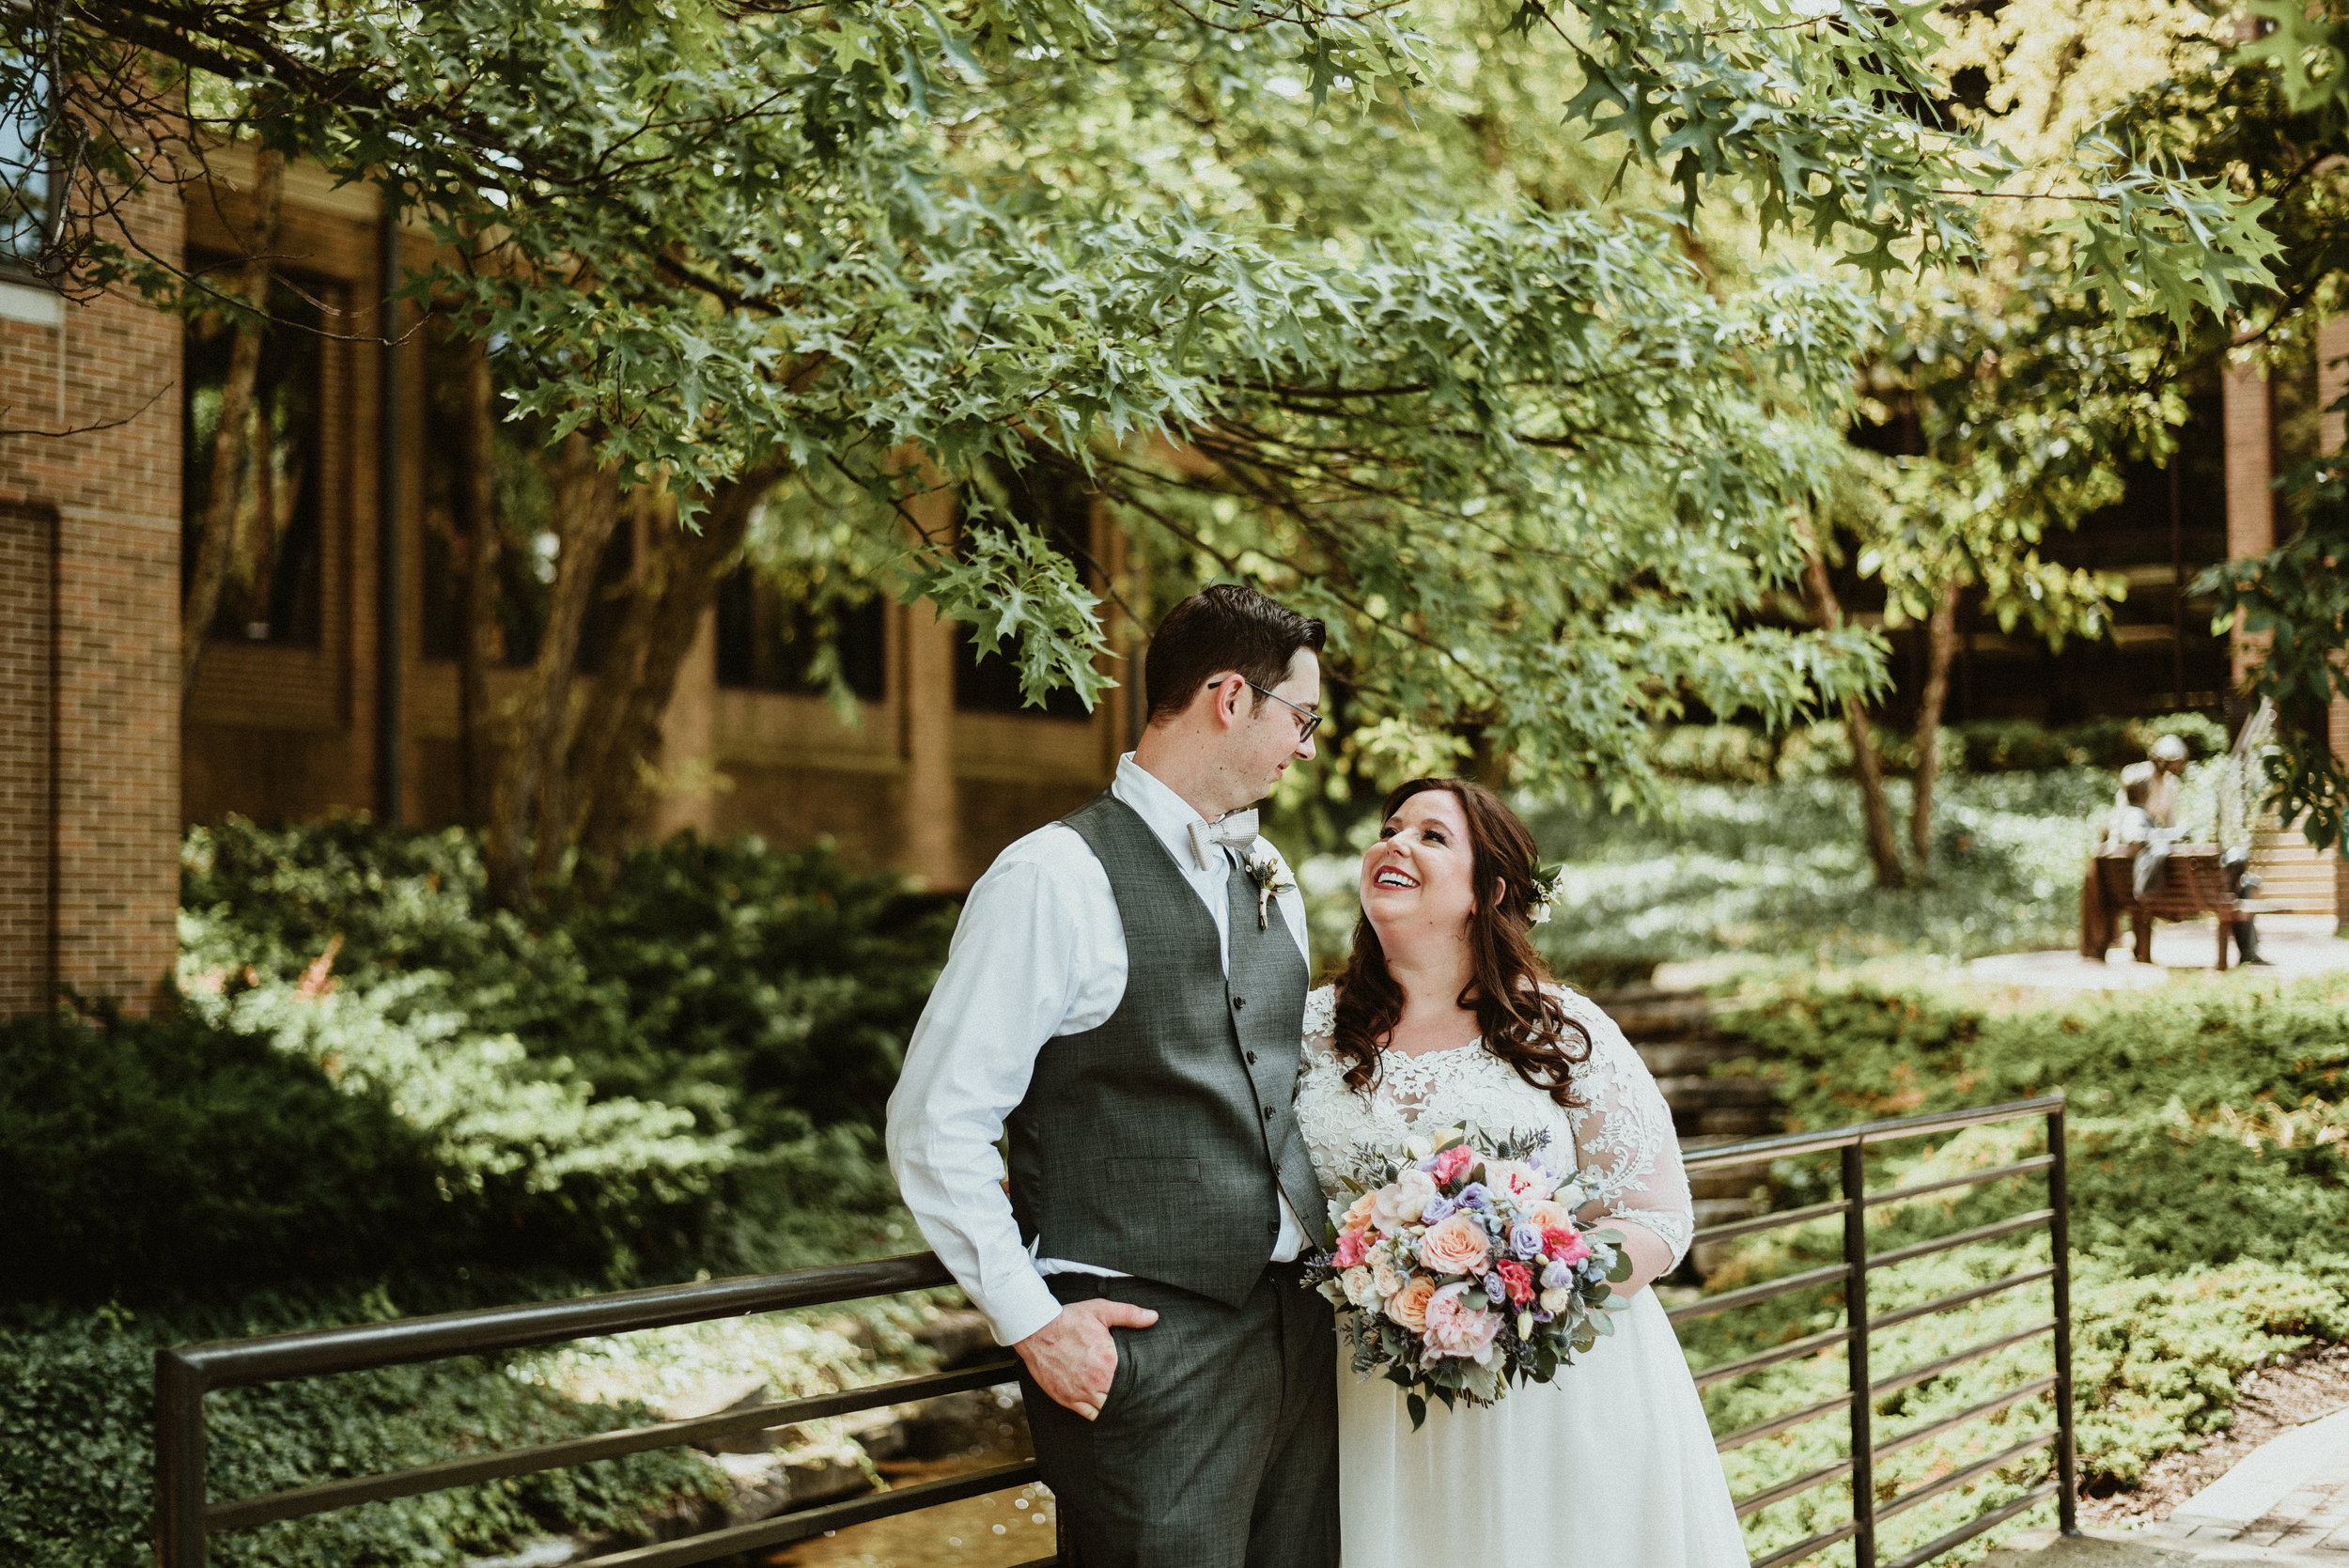 Rachel and Patrick - Rustic & Romantic | Disney Themed Summer Wedding | Q Center St. Charles, IL